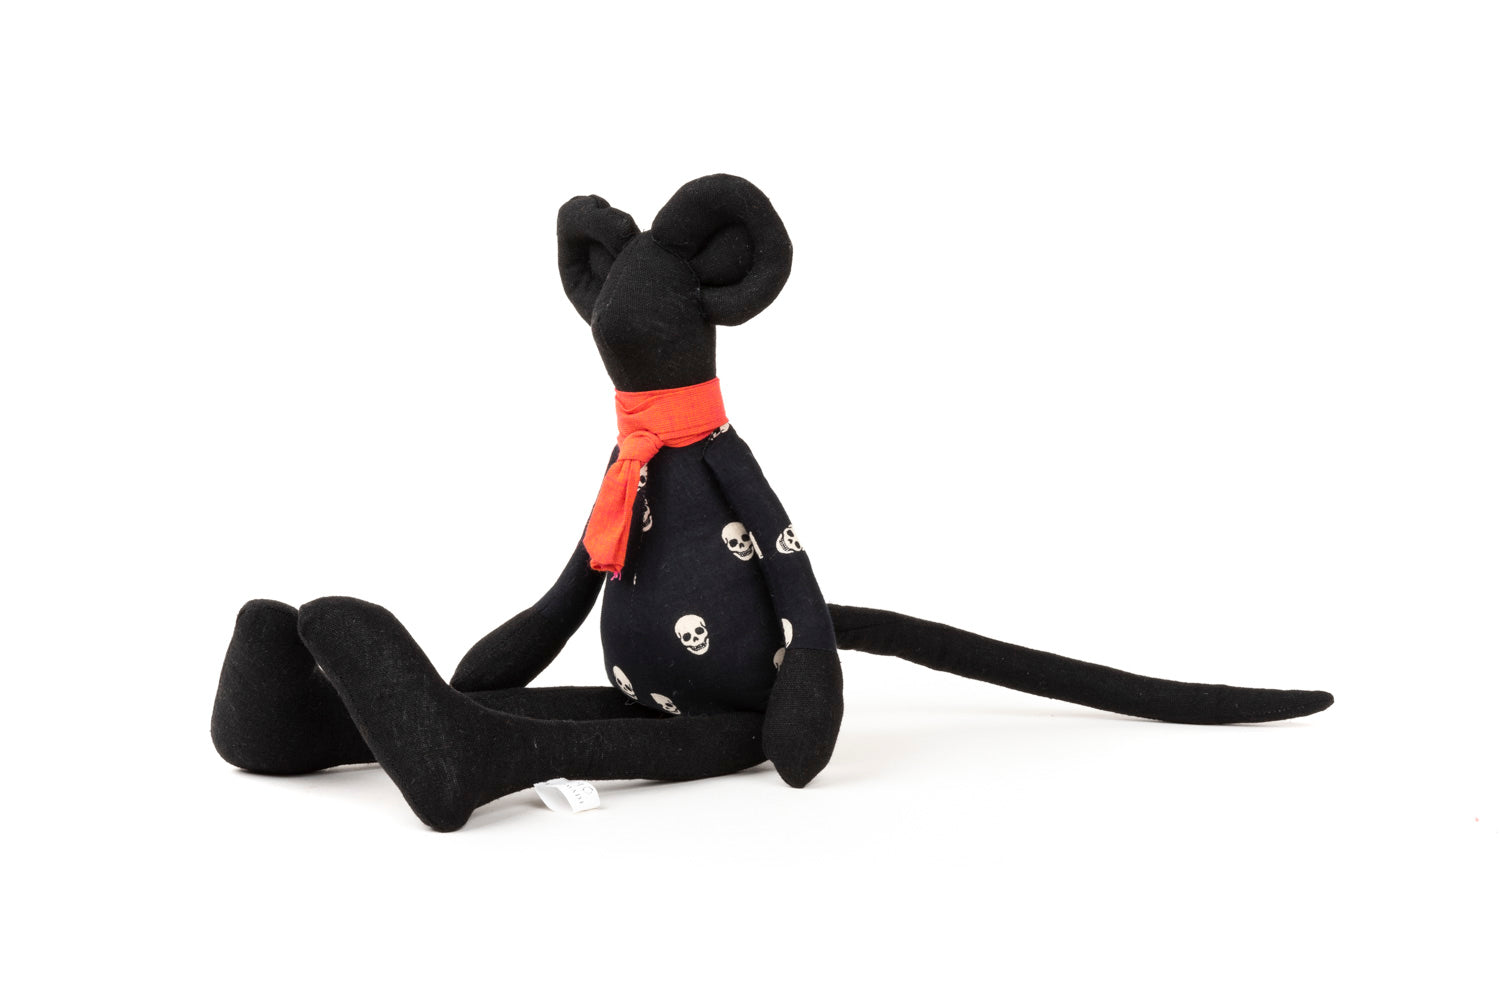 Stuffed doll, Home Decor toy, Handmade doll, Black doll, Mouse doll, Handmade mouse, Fabric doll, Plush doll, Textile doll, Stuffed animal,